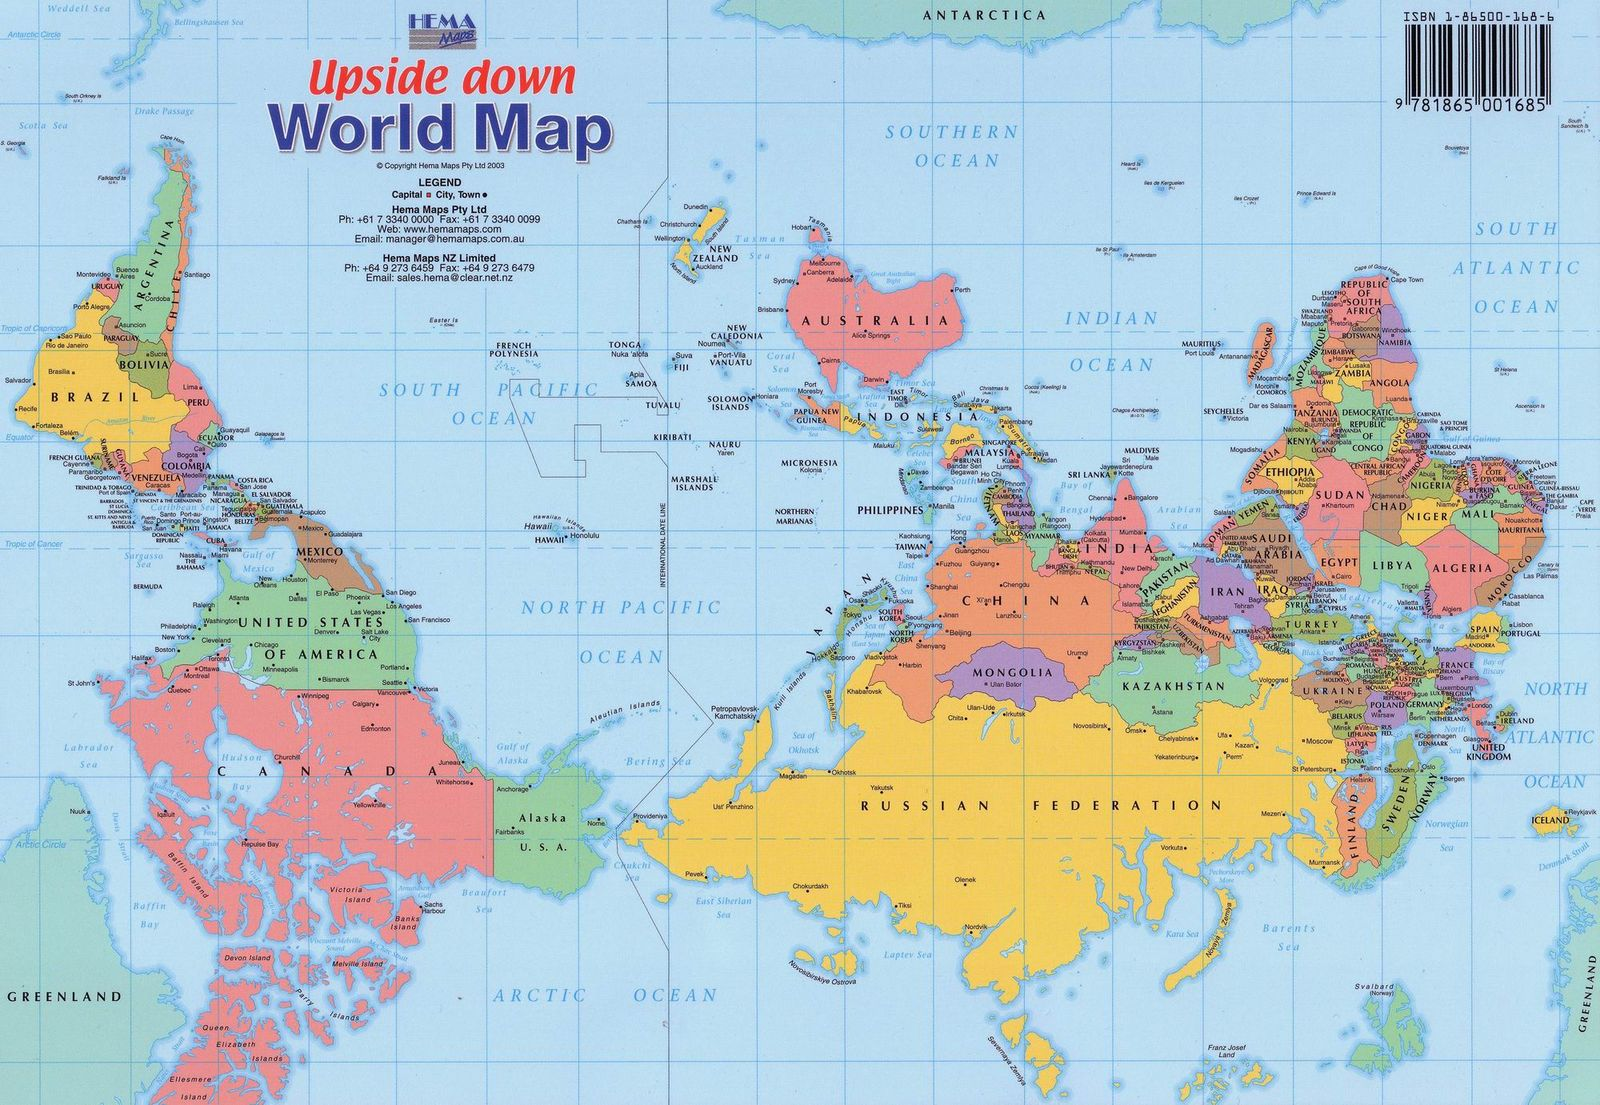 d e c e p t o l o g y upside down world map shows north is up